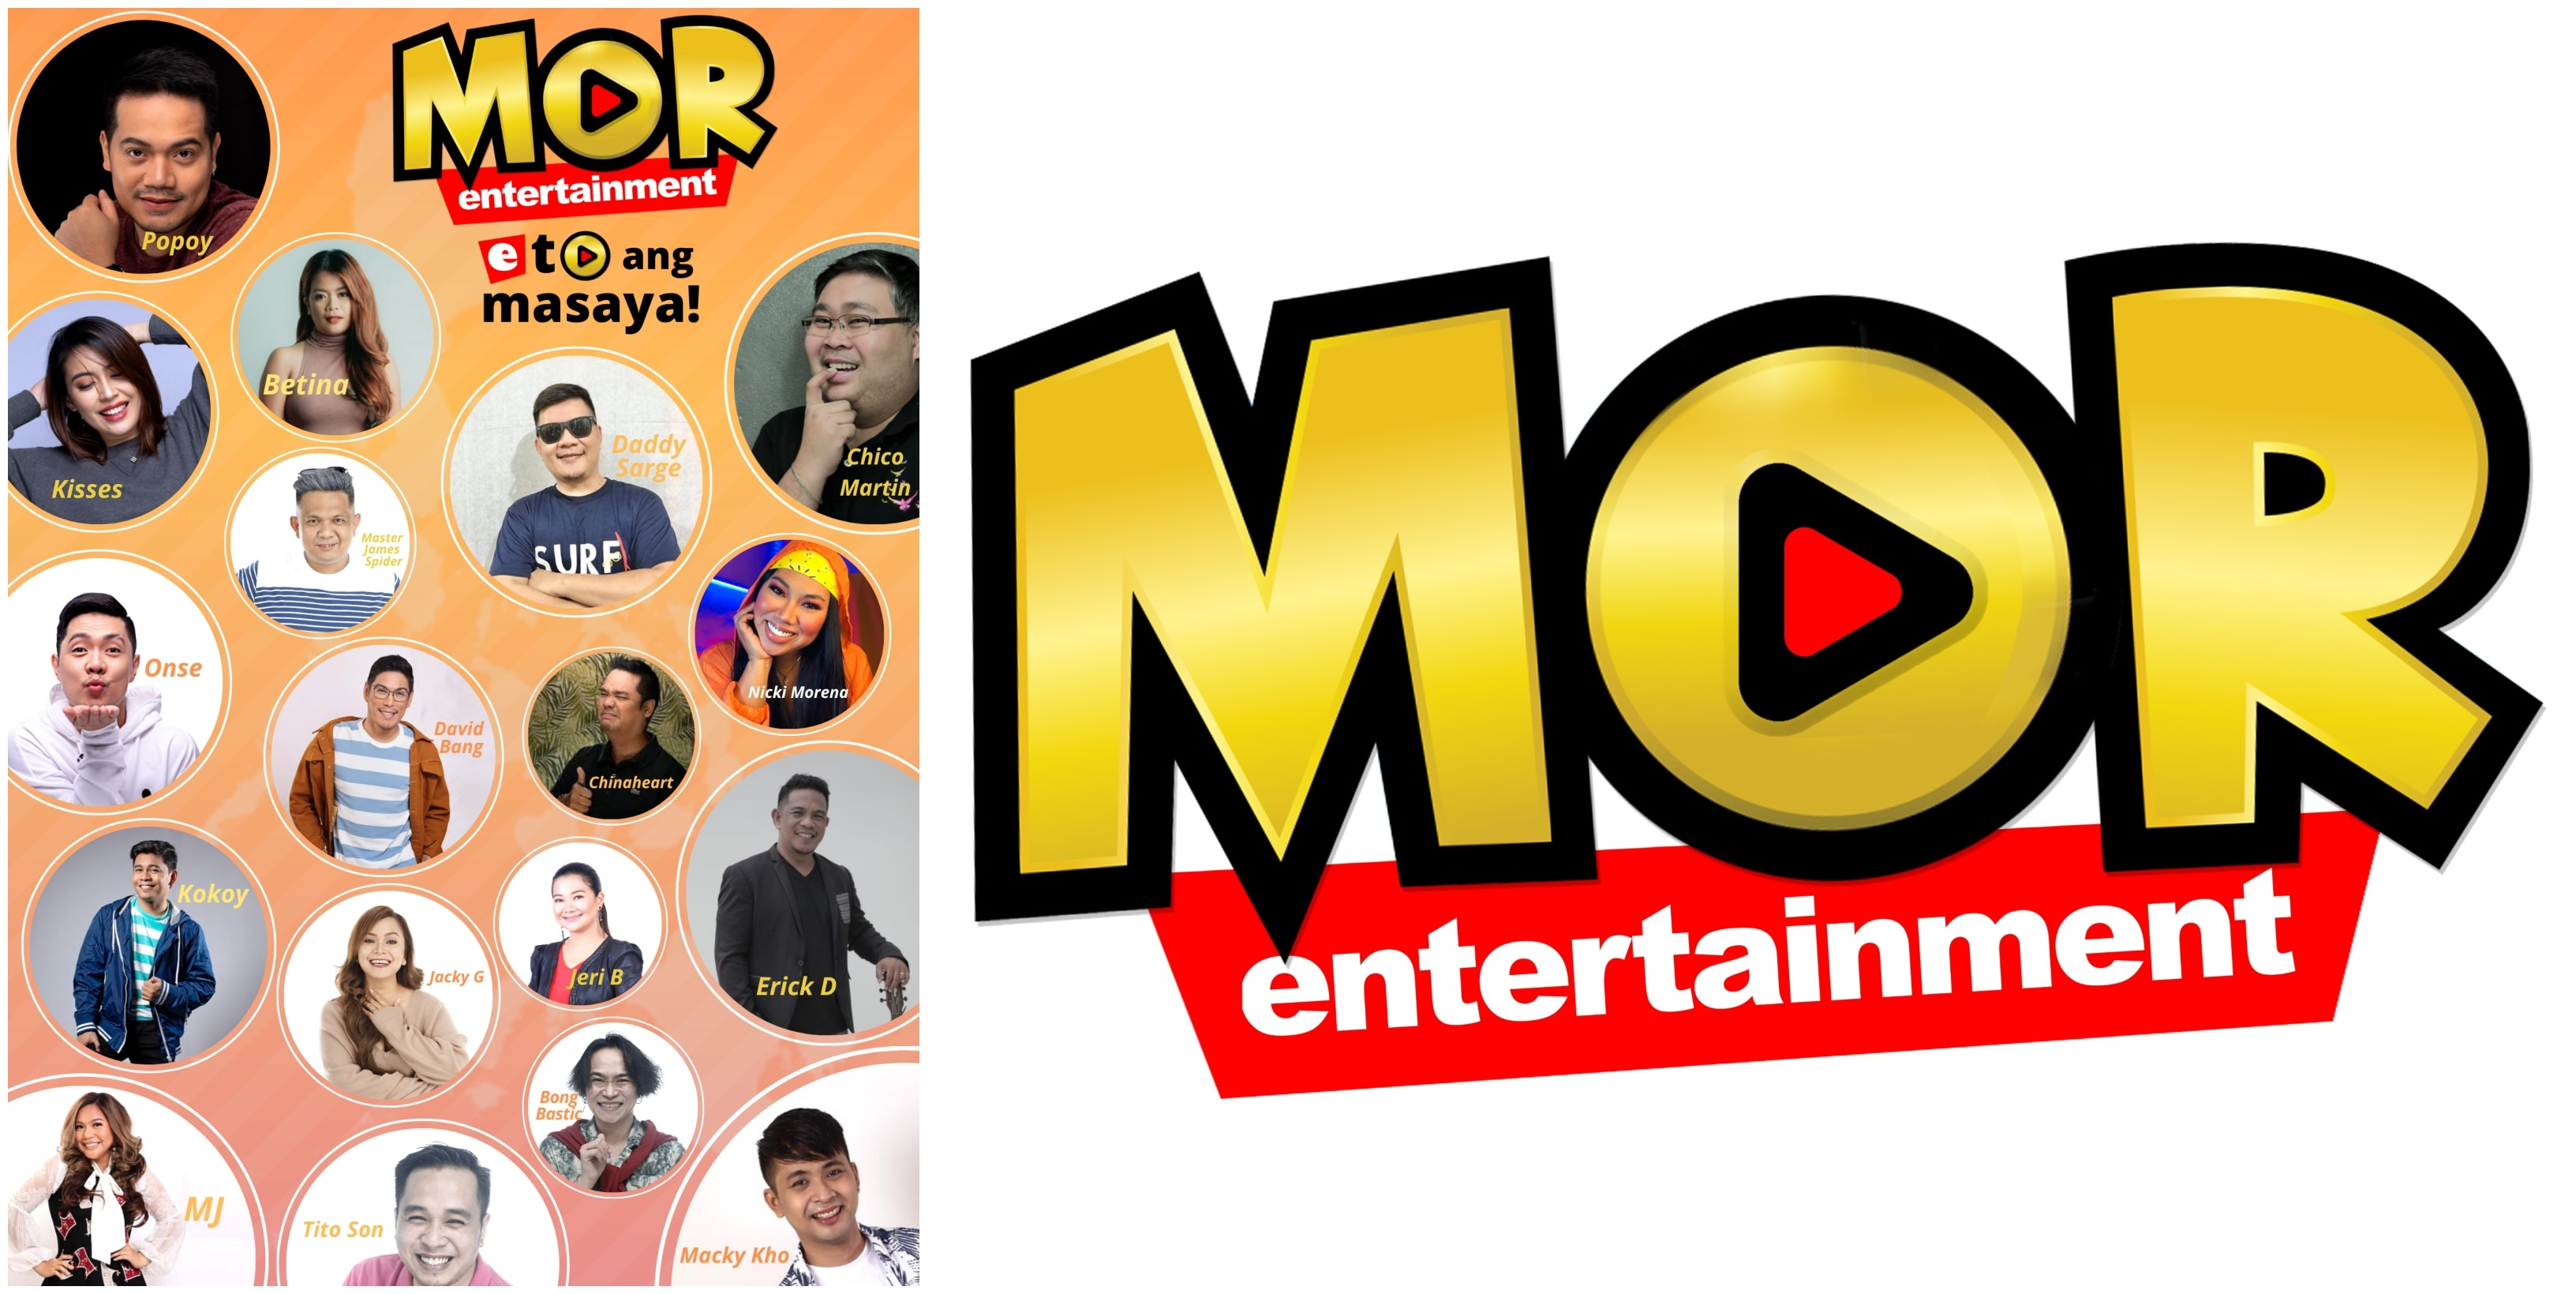 ABS-CBN rolls out MOR Entertainment via multiple digital platforms